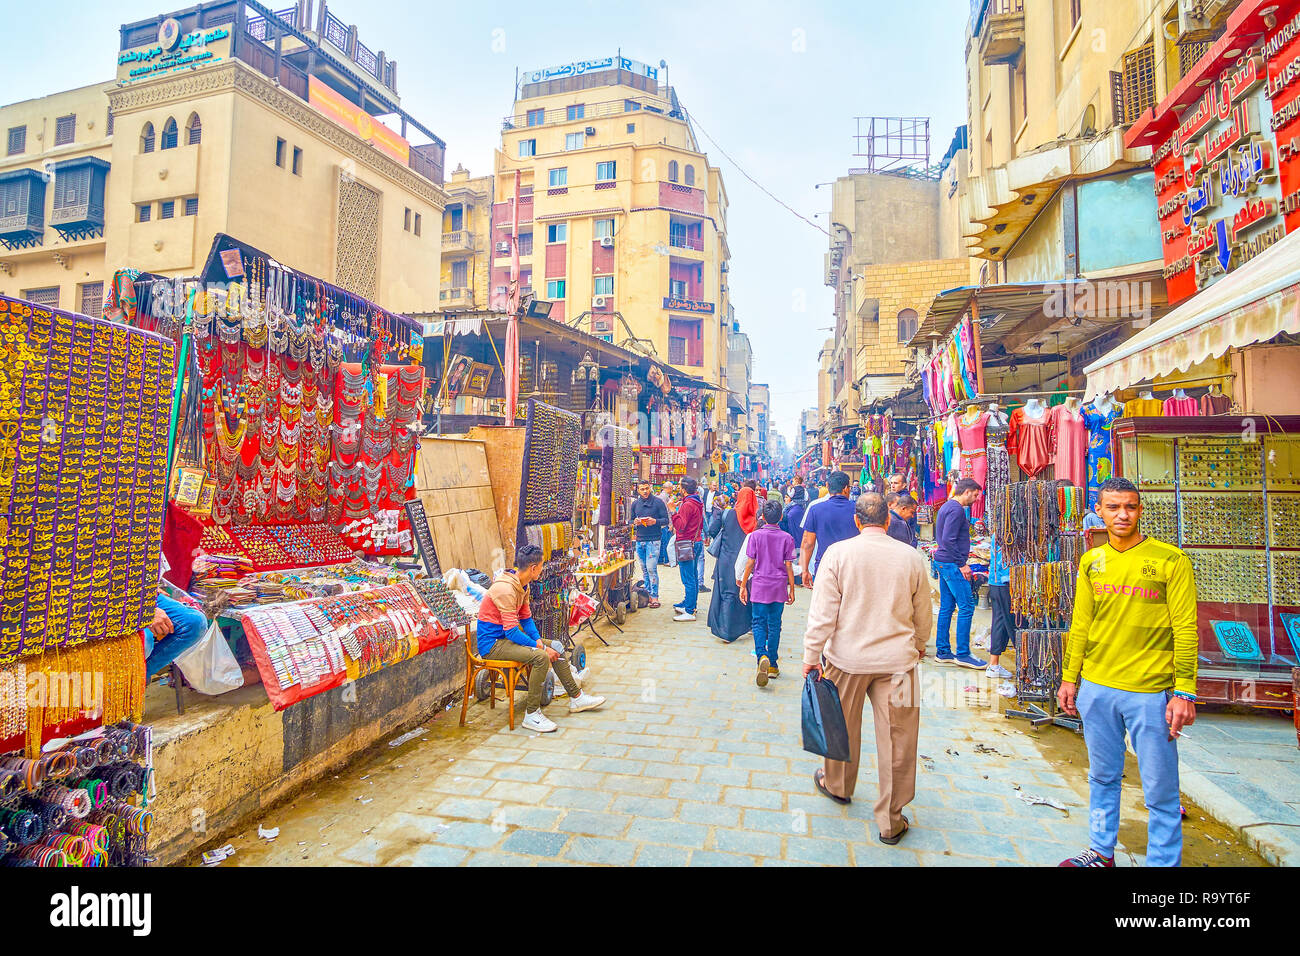 CAIRO, EGYPT - DECEMBER 20, 2017: The goldsmith district of